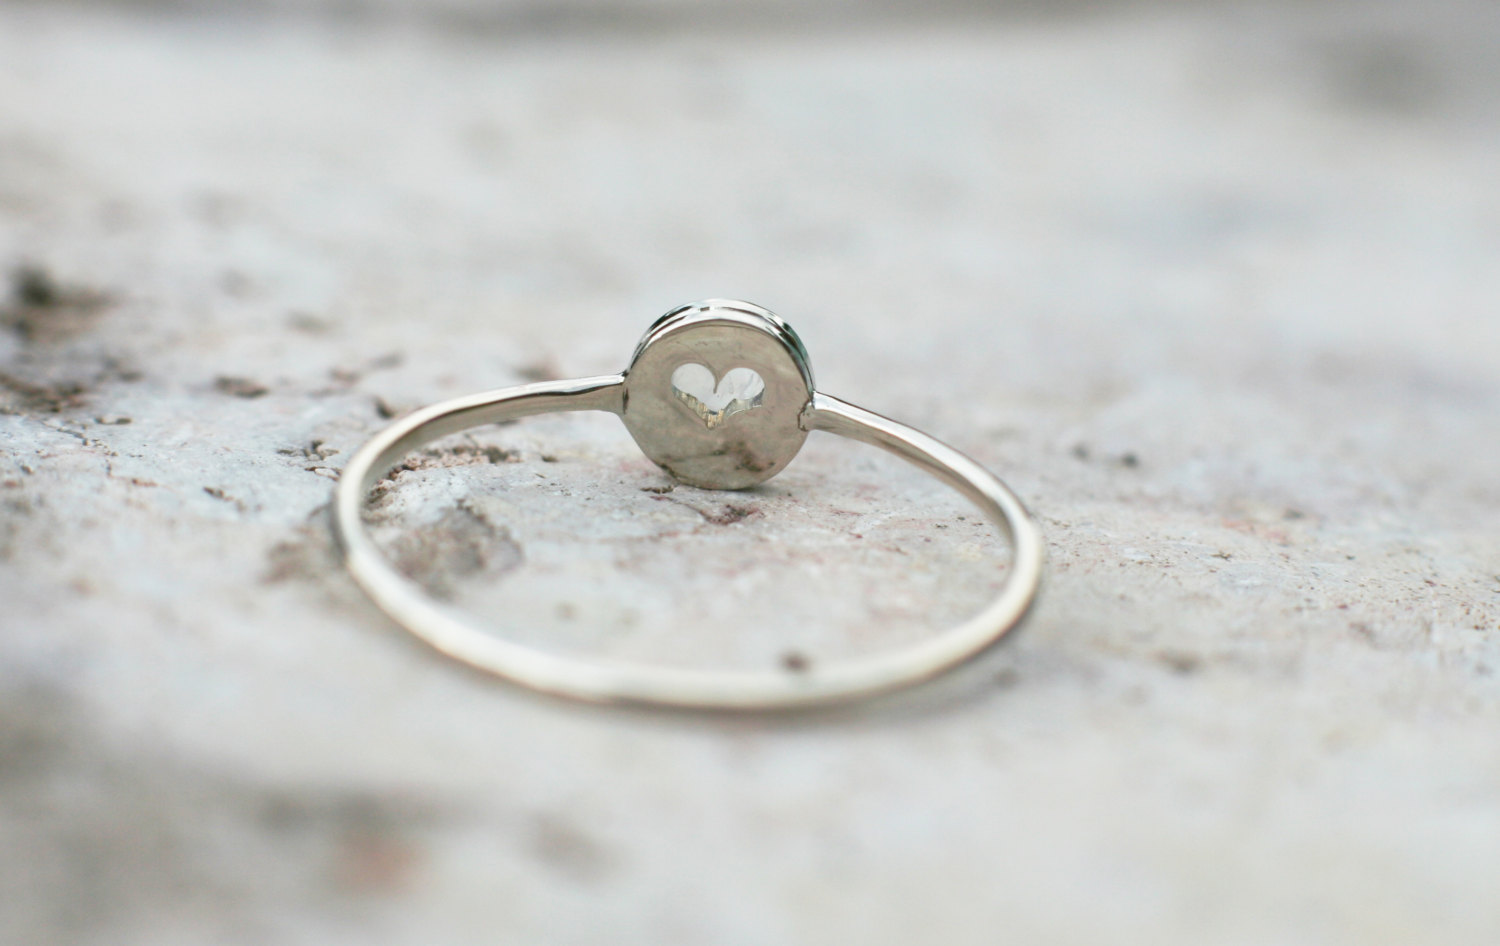 rainbow moonstone ring in 14k white gold moonstone engagement ring anniver labradorite wedding ring Il fullxfull 5mqq small